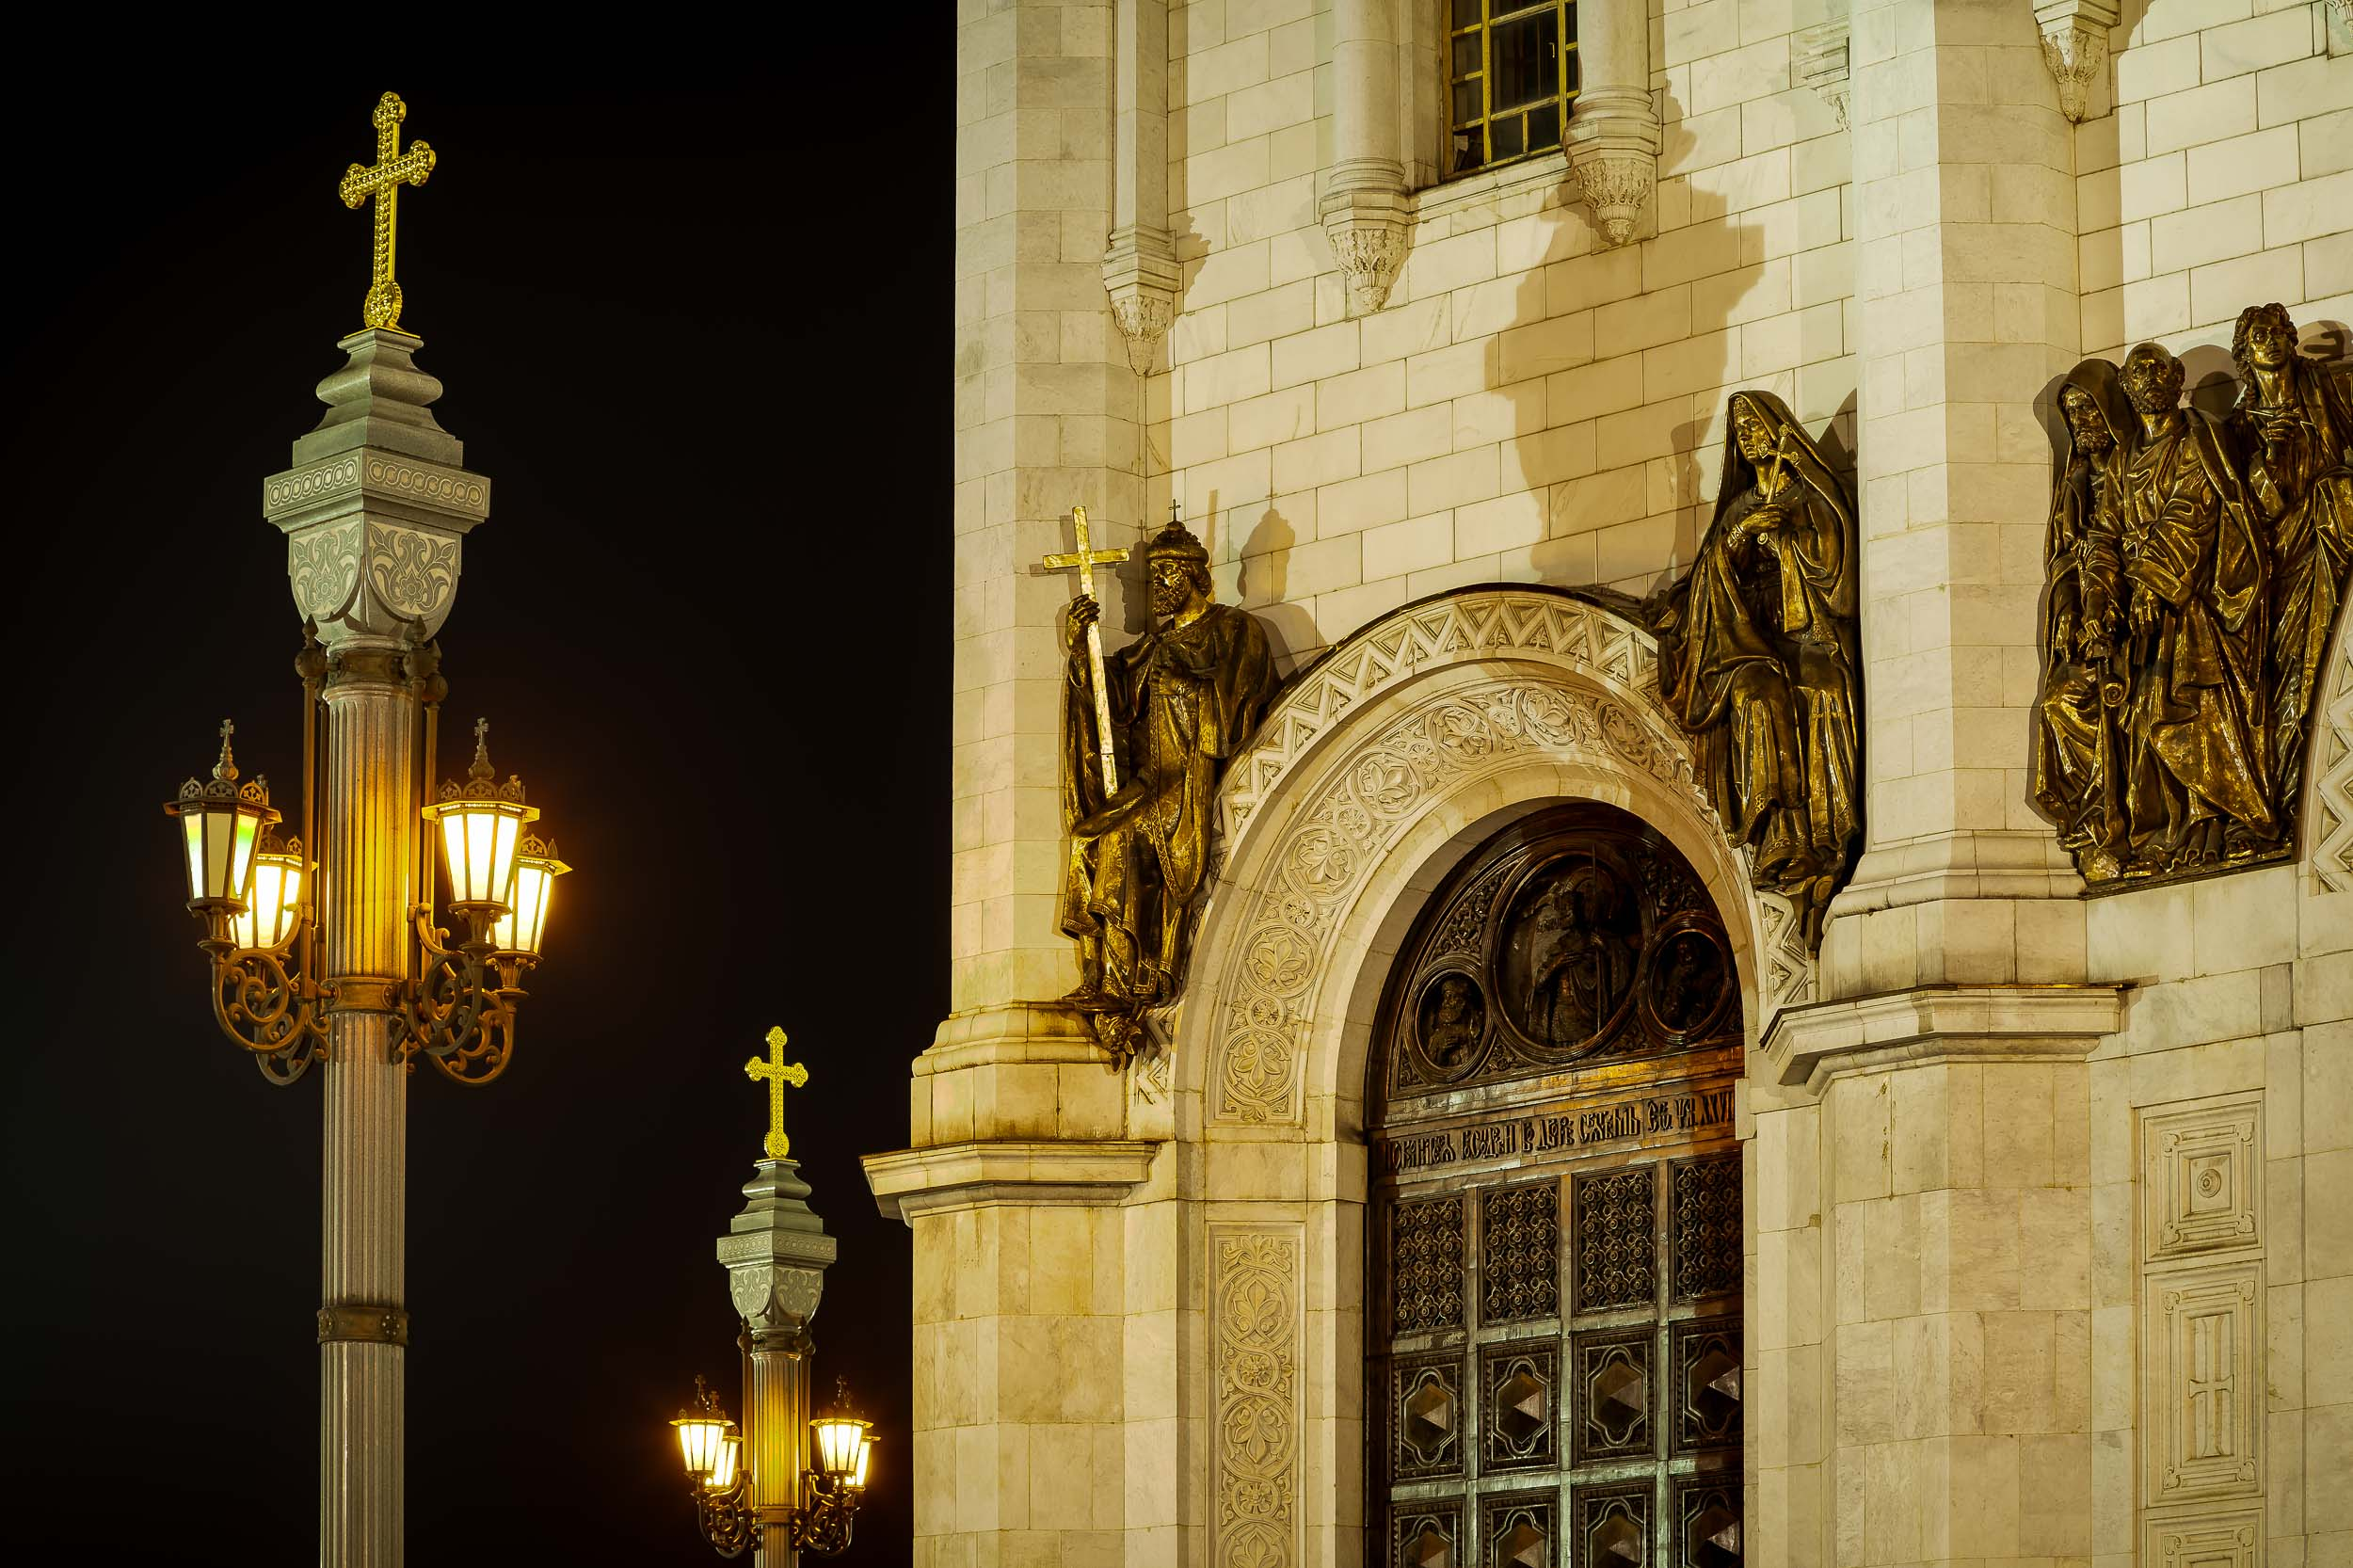 Statues on the outside wall of the spectacular    Cathedral of Christ the Saviour    in    Moscow, Russia   .